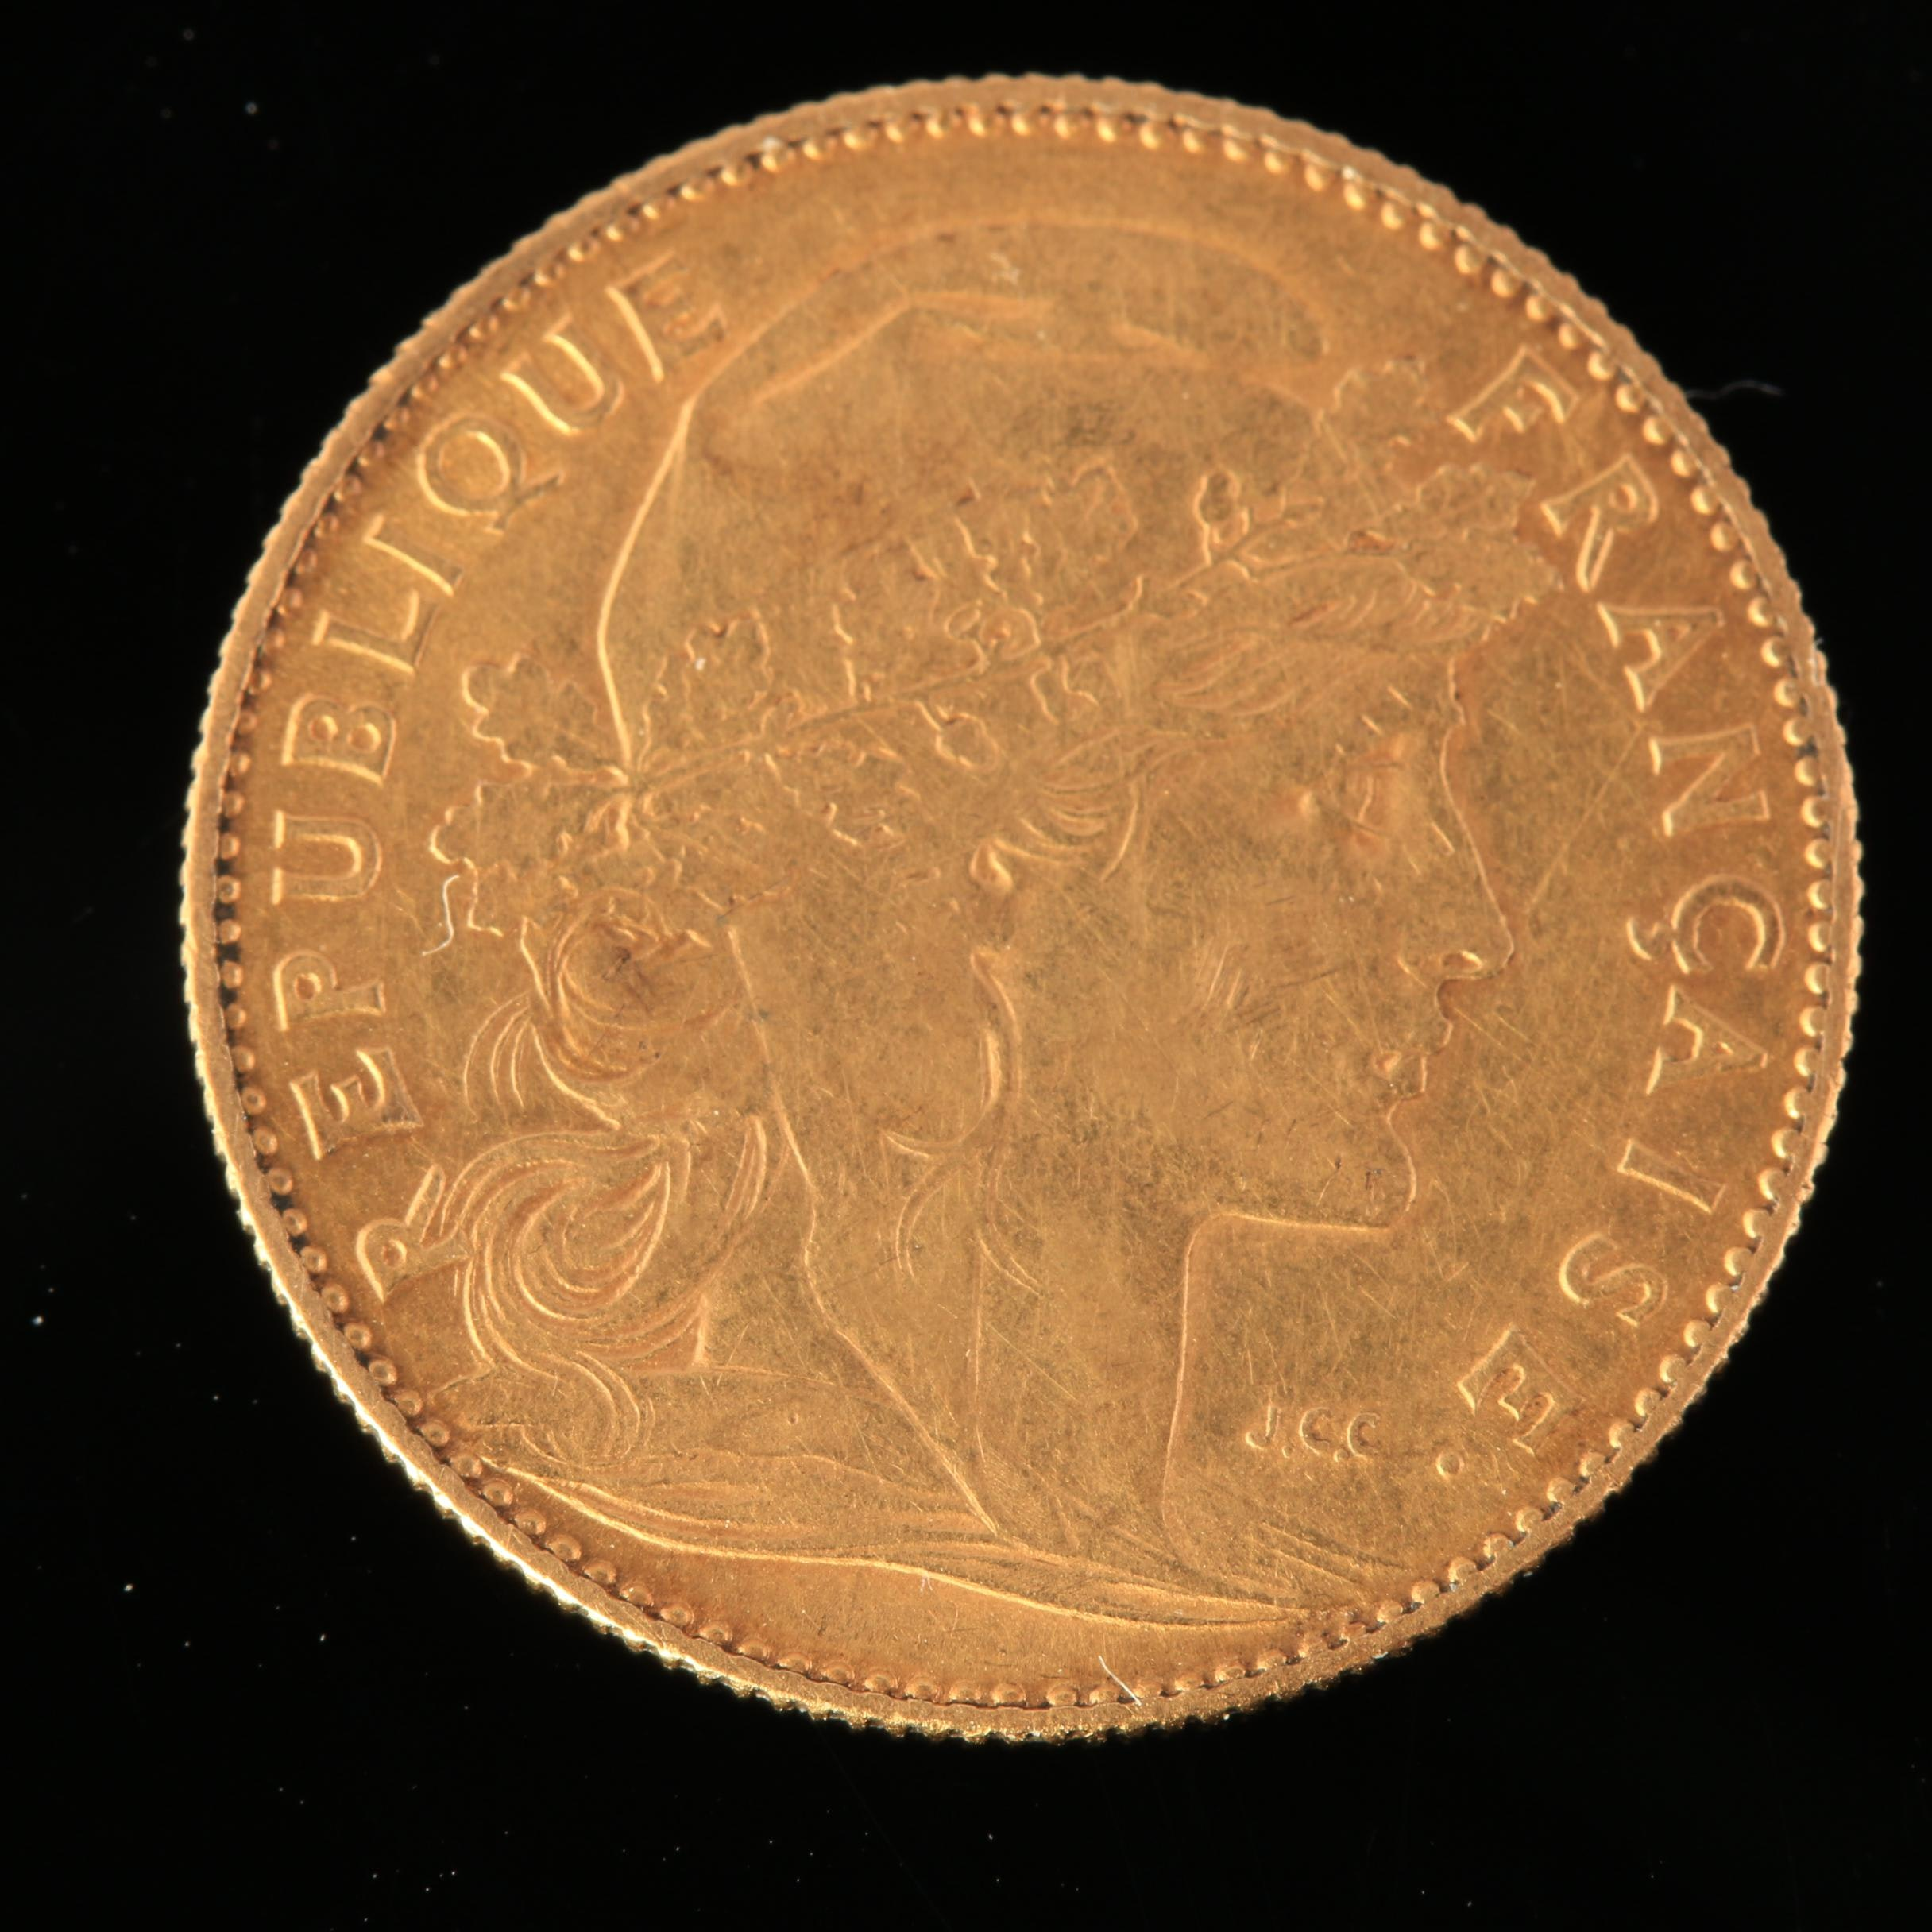 1900 French 10 Francs Gold Coin